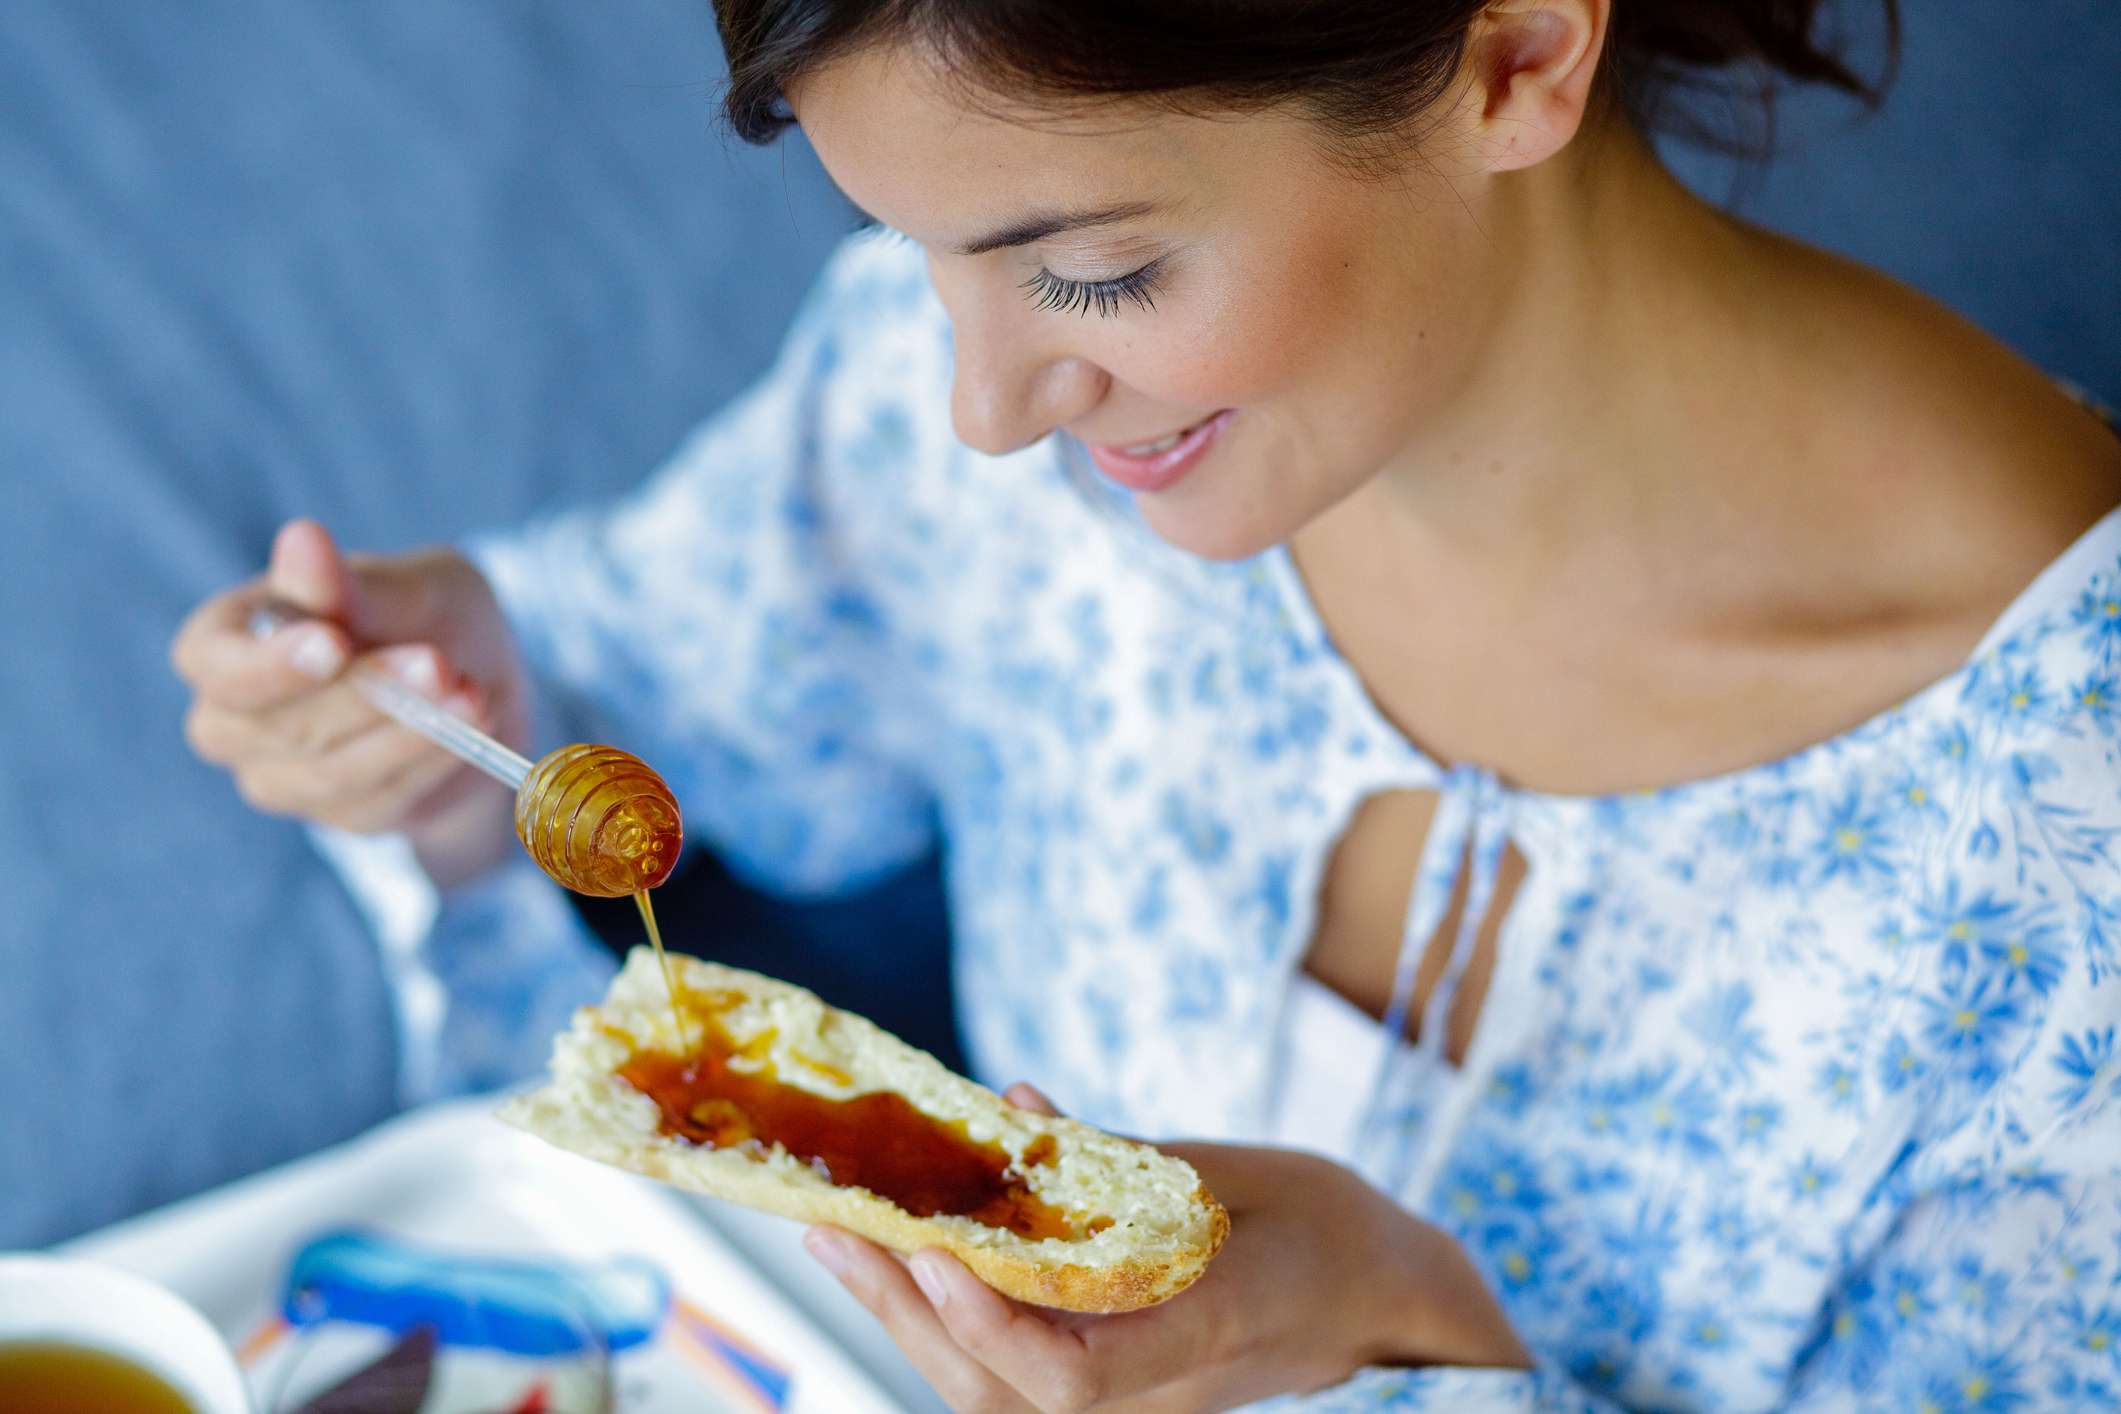 Woman pouring honey on a piece of bread